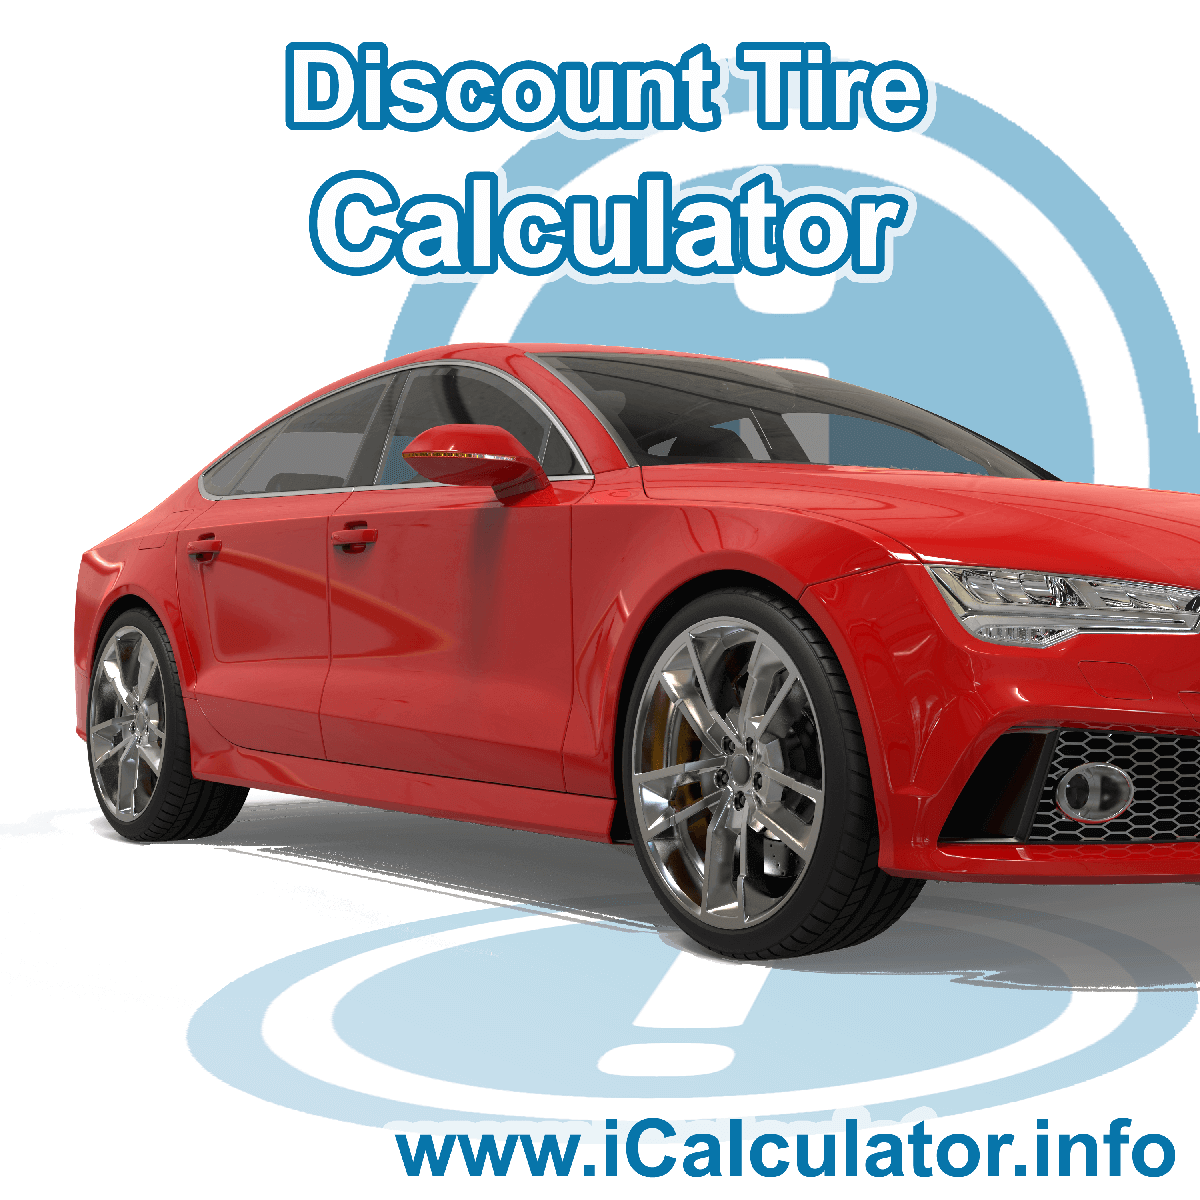 Discount Tire Calculator. Getting a good price on new tires online and comparing tire discounts and savings is easy with the Discount Tire Calculator